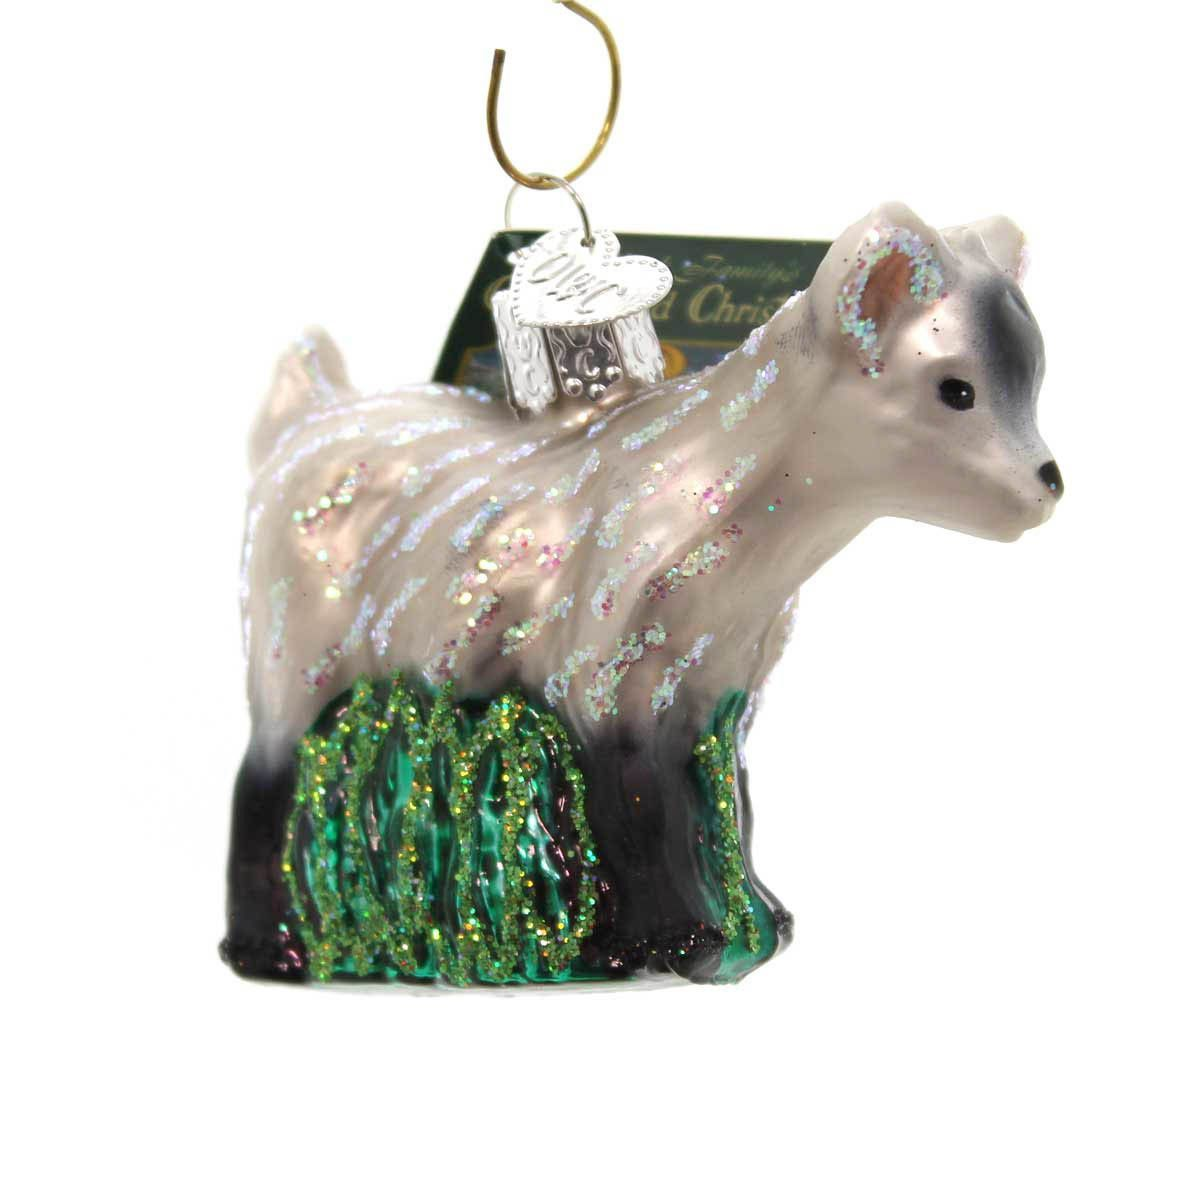 Old World Christmas Pygmy Goat Glass Ornament | Goats, Ornament and ...